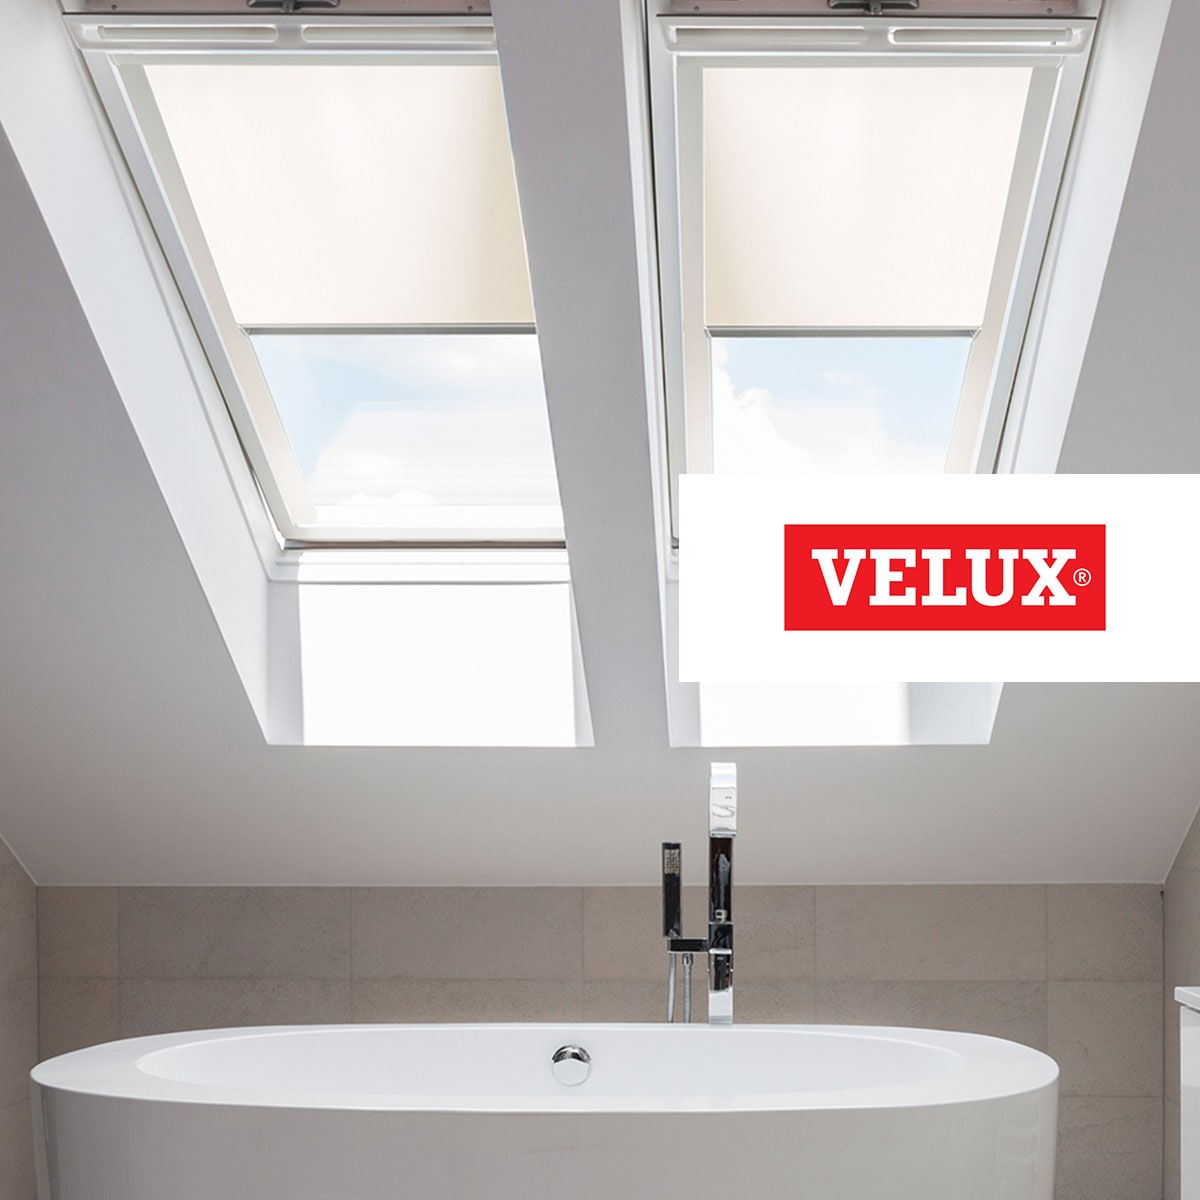 velux dachfenster velux dachfenster with velux. Black Bedroom Furniture Sets. Home Design Ideas